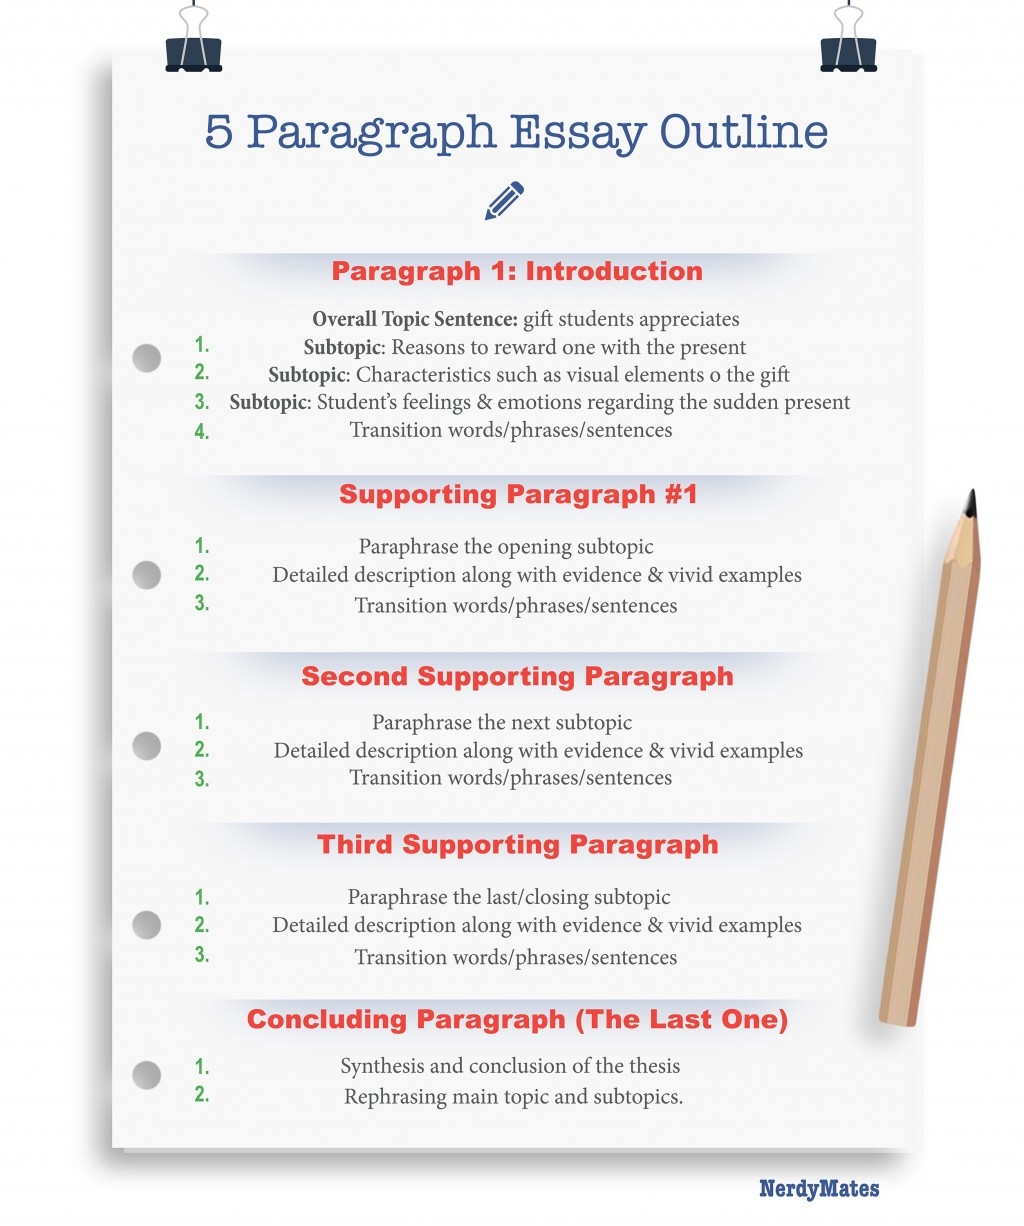 006 Essay Example How To Write Paragraph Writing Help Ou About Yourself Pdf 4th Grade Ppt Outline Do You Middle School In Minutes Unbelievable A 5 Mla Format 30 Large